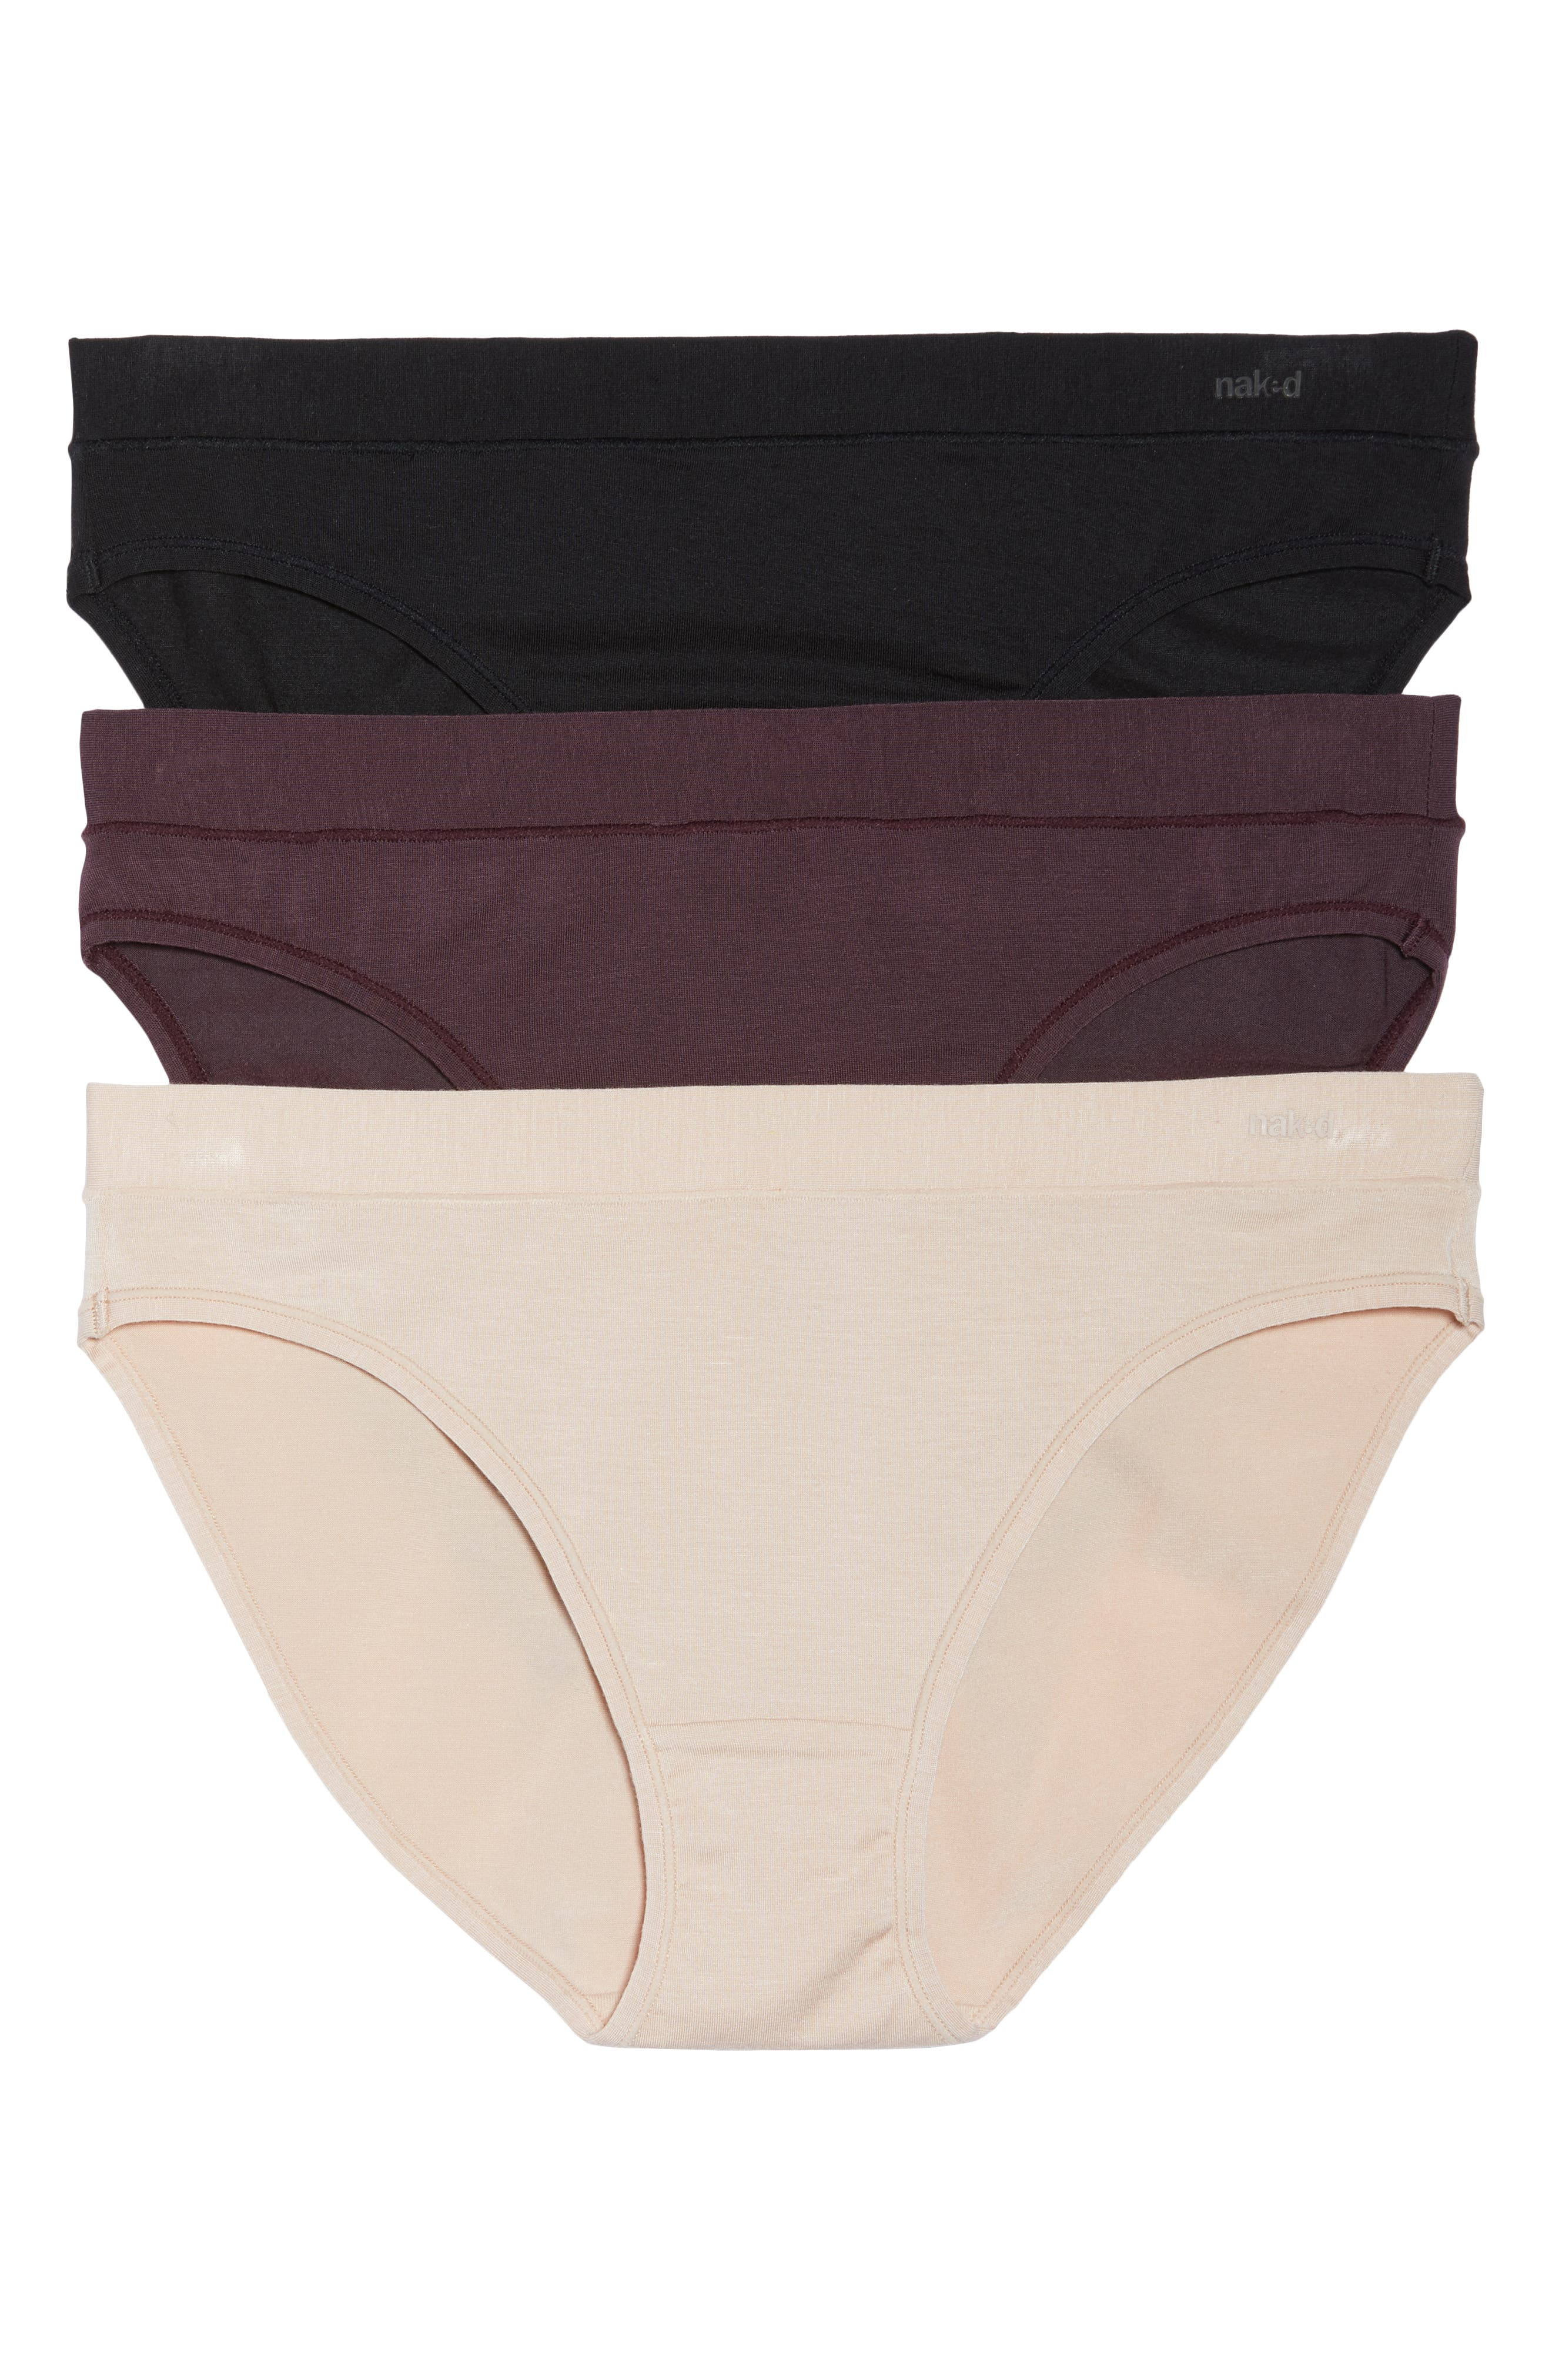 3-Pack Stretch Modal Modern Panties,                             Main thumbnail 1, color,                             Barely Pink/Black/Eggplant